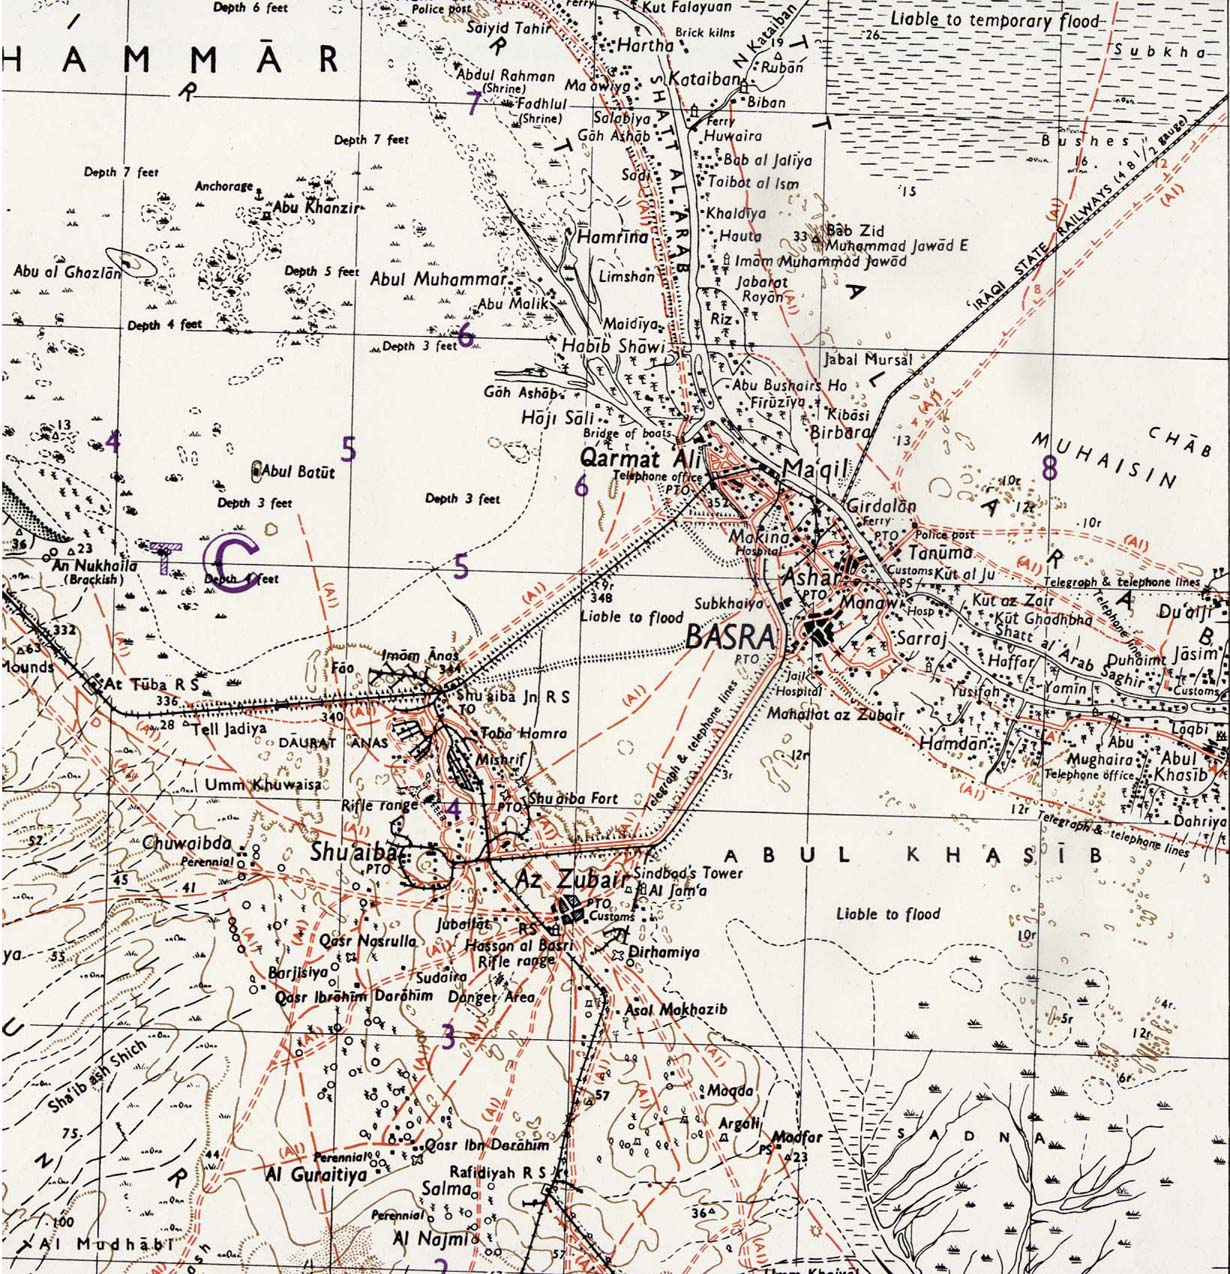 Middle East Historical Maps - Perry-Castañeda Map Collection ... on map of istanbul, map of mogadishu, map of hankou, map of ramallah, map of karachi, map of kabul, map of irbil, map of sulaymaniyah, map of shuwaikh port, map of jeddah, map of ormuz, map of kurdish people, map of bukhara, map of fustat, map of riyadh, map of zagros mountains, map of tel aviv, map of delhi, map of samarkand, map of beirut,